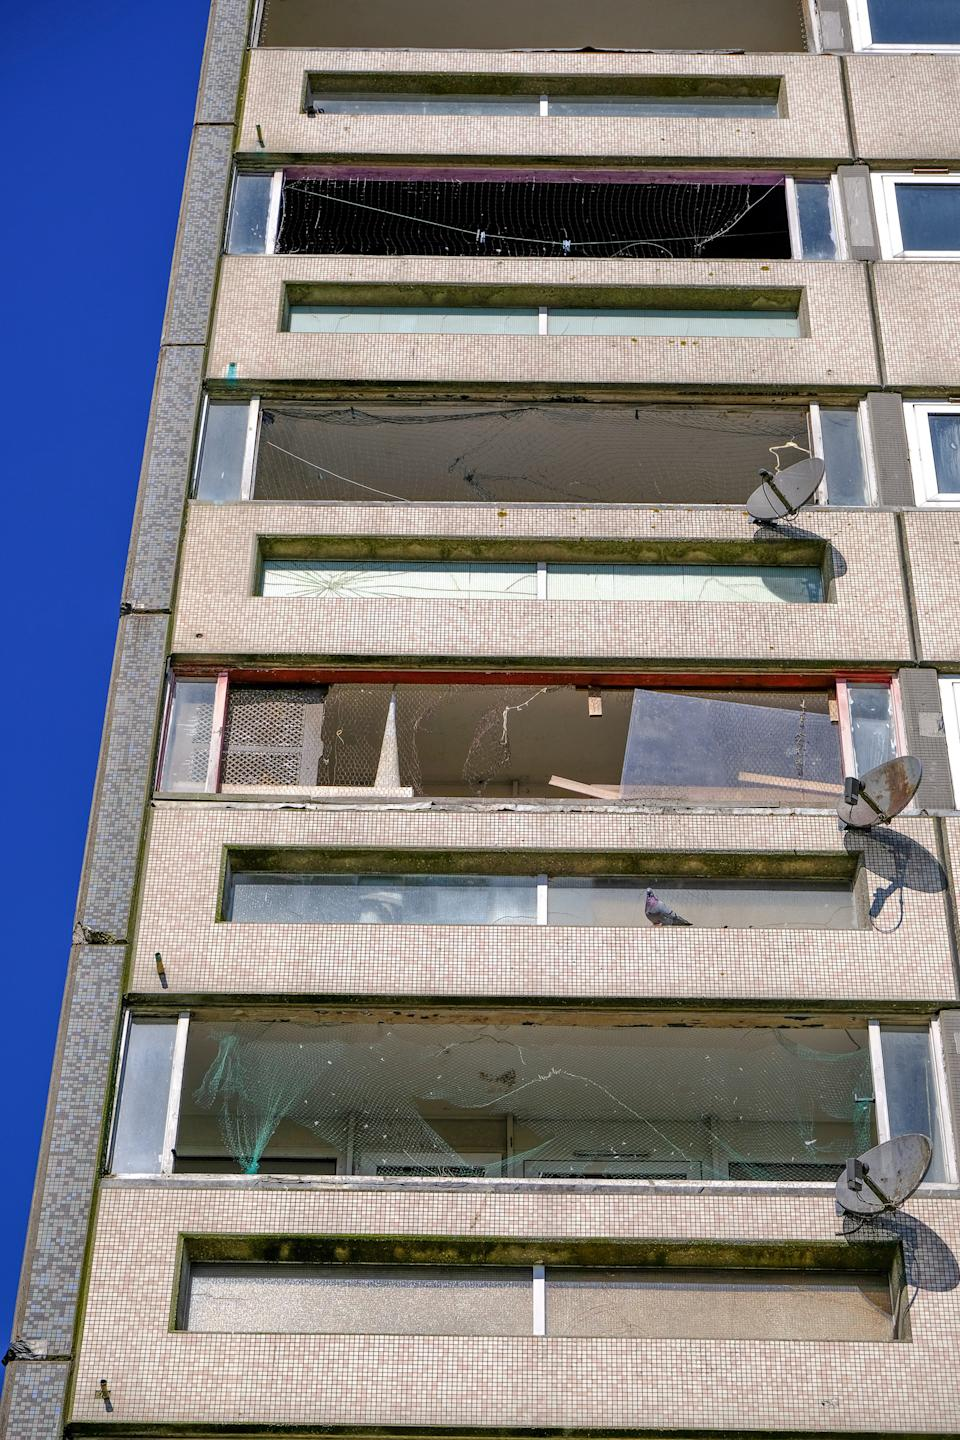 Broken windows at Saxelby House. (SWNS)